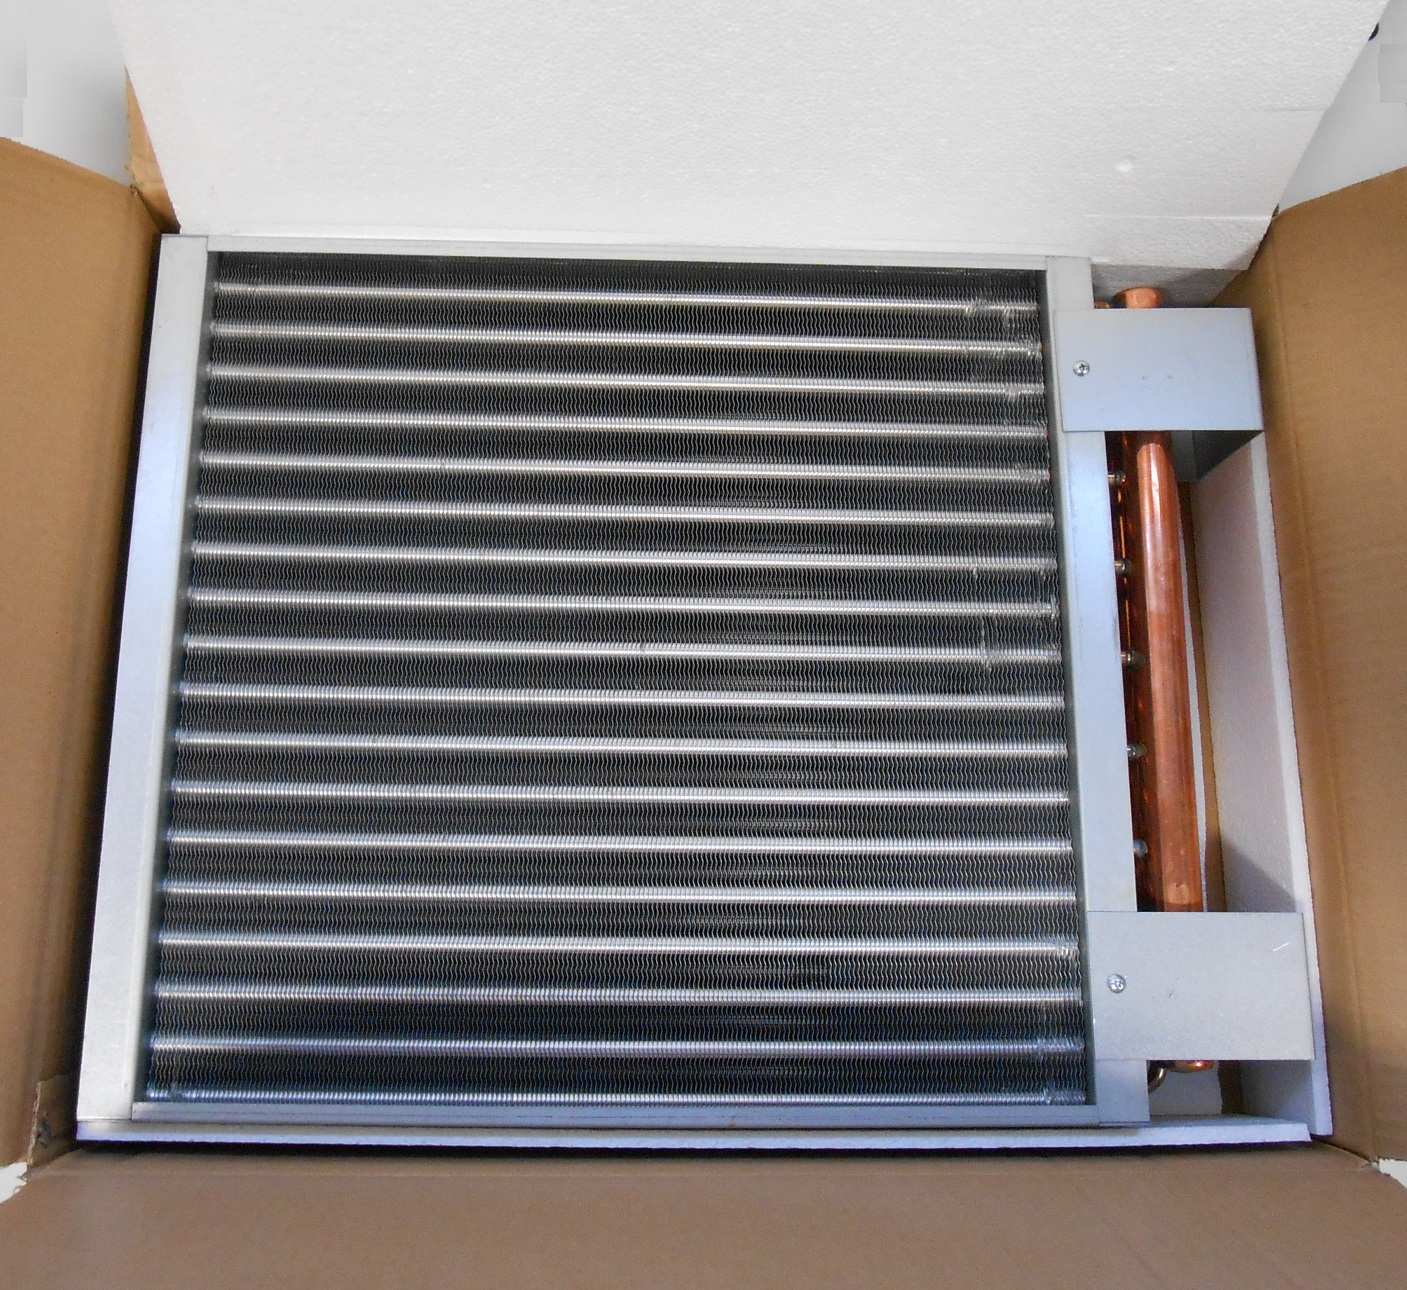 20x20-Water-to-Air-Heat-Exchanger-Hot-Water-Coil-Outdoor-Wood-Furnace thumbnail 4